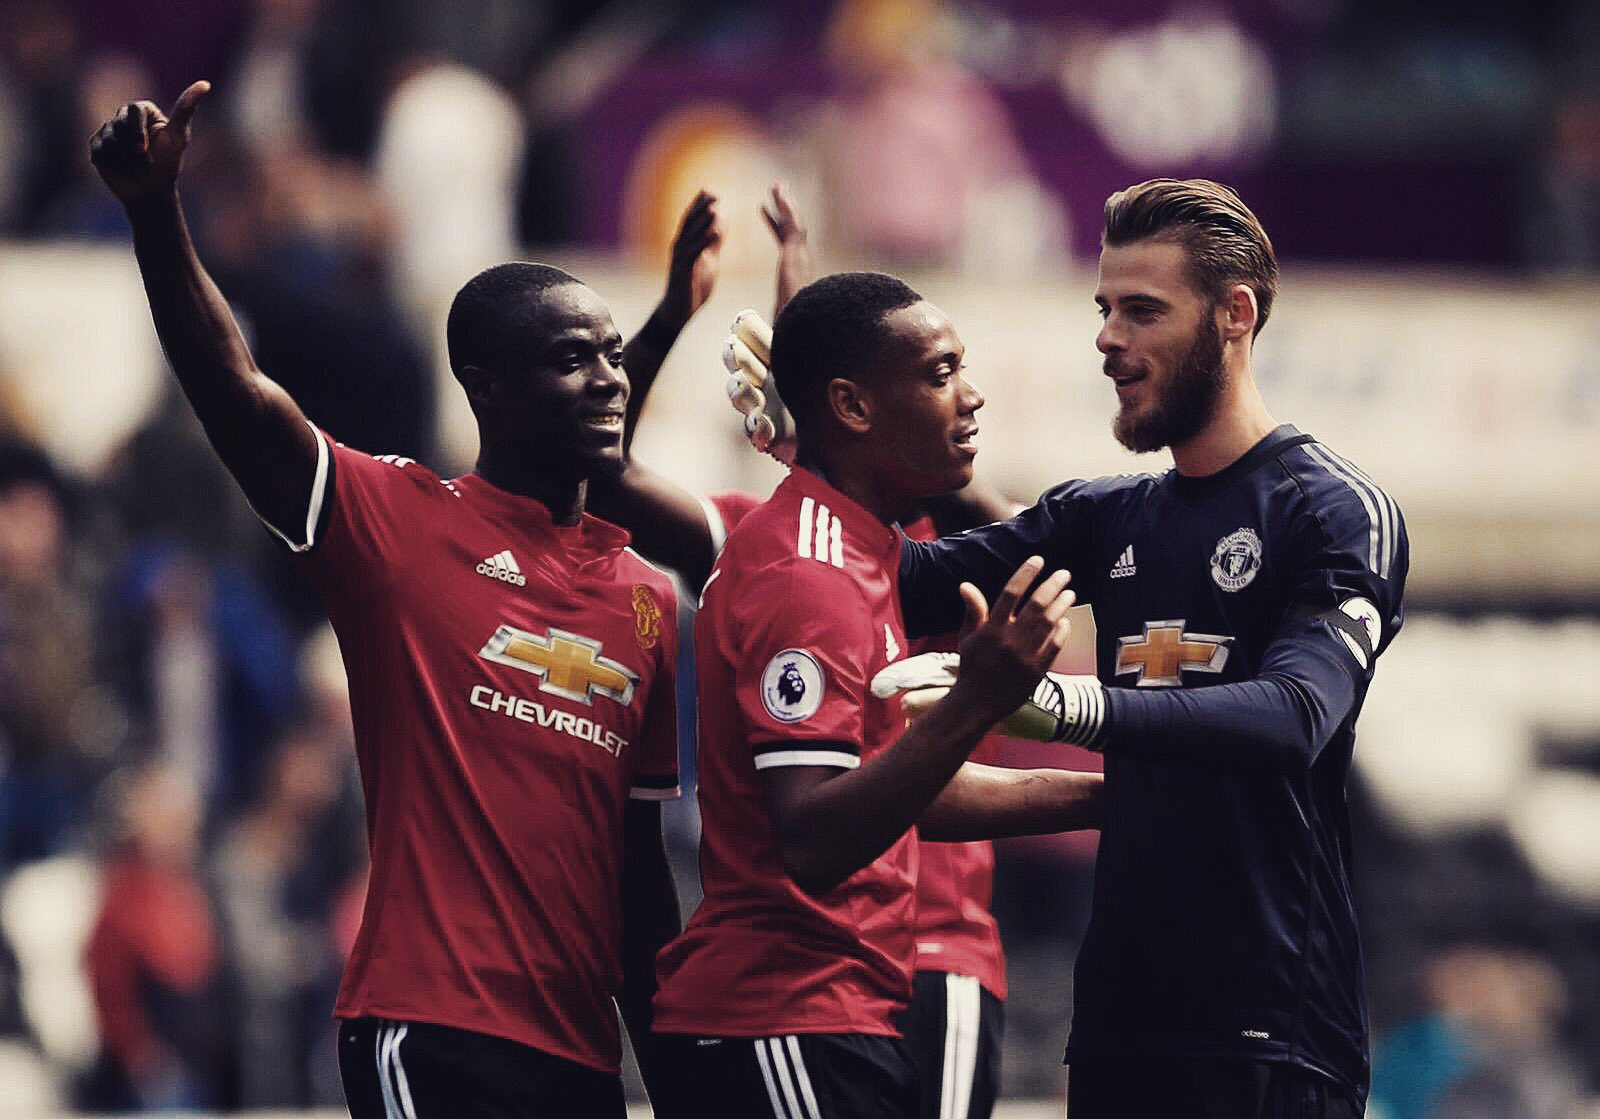 Happy weekend @ManUtd family! ������ https://t.co/dVeCI06AIP